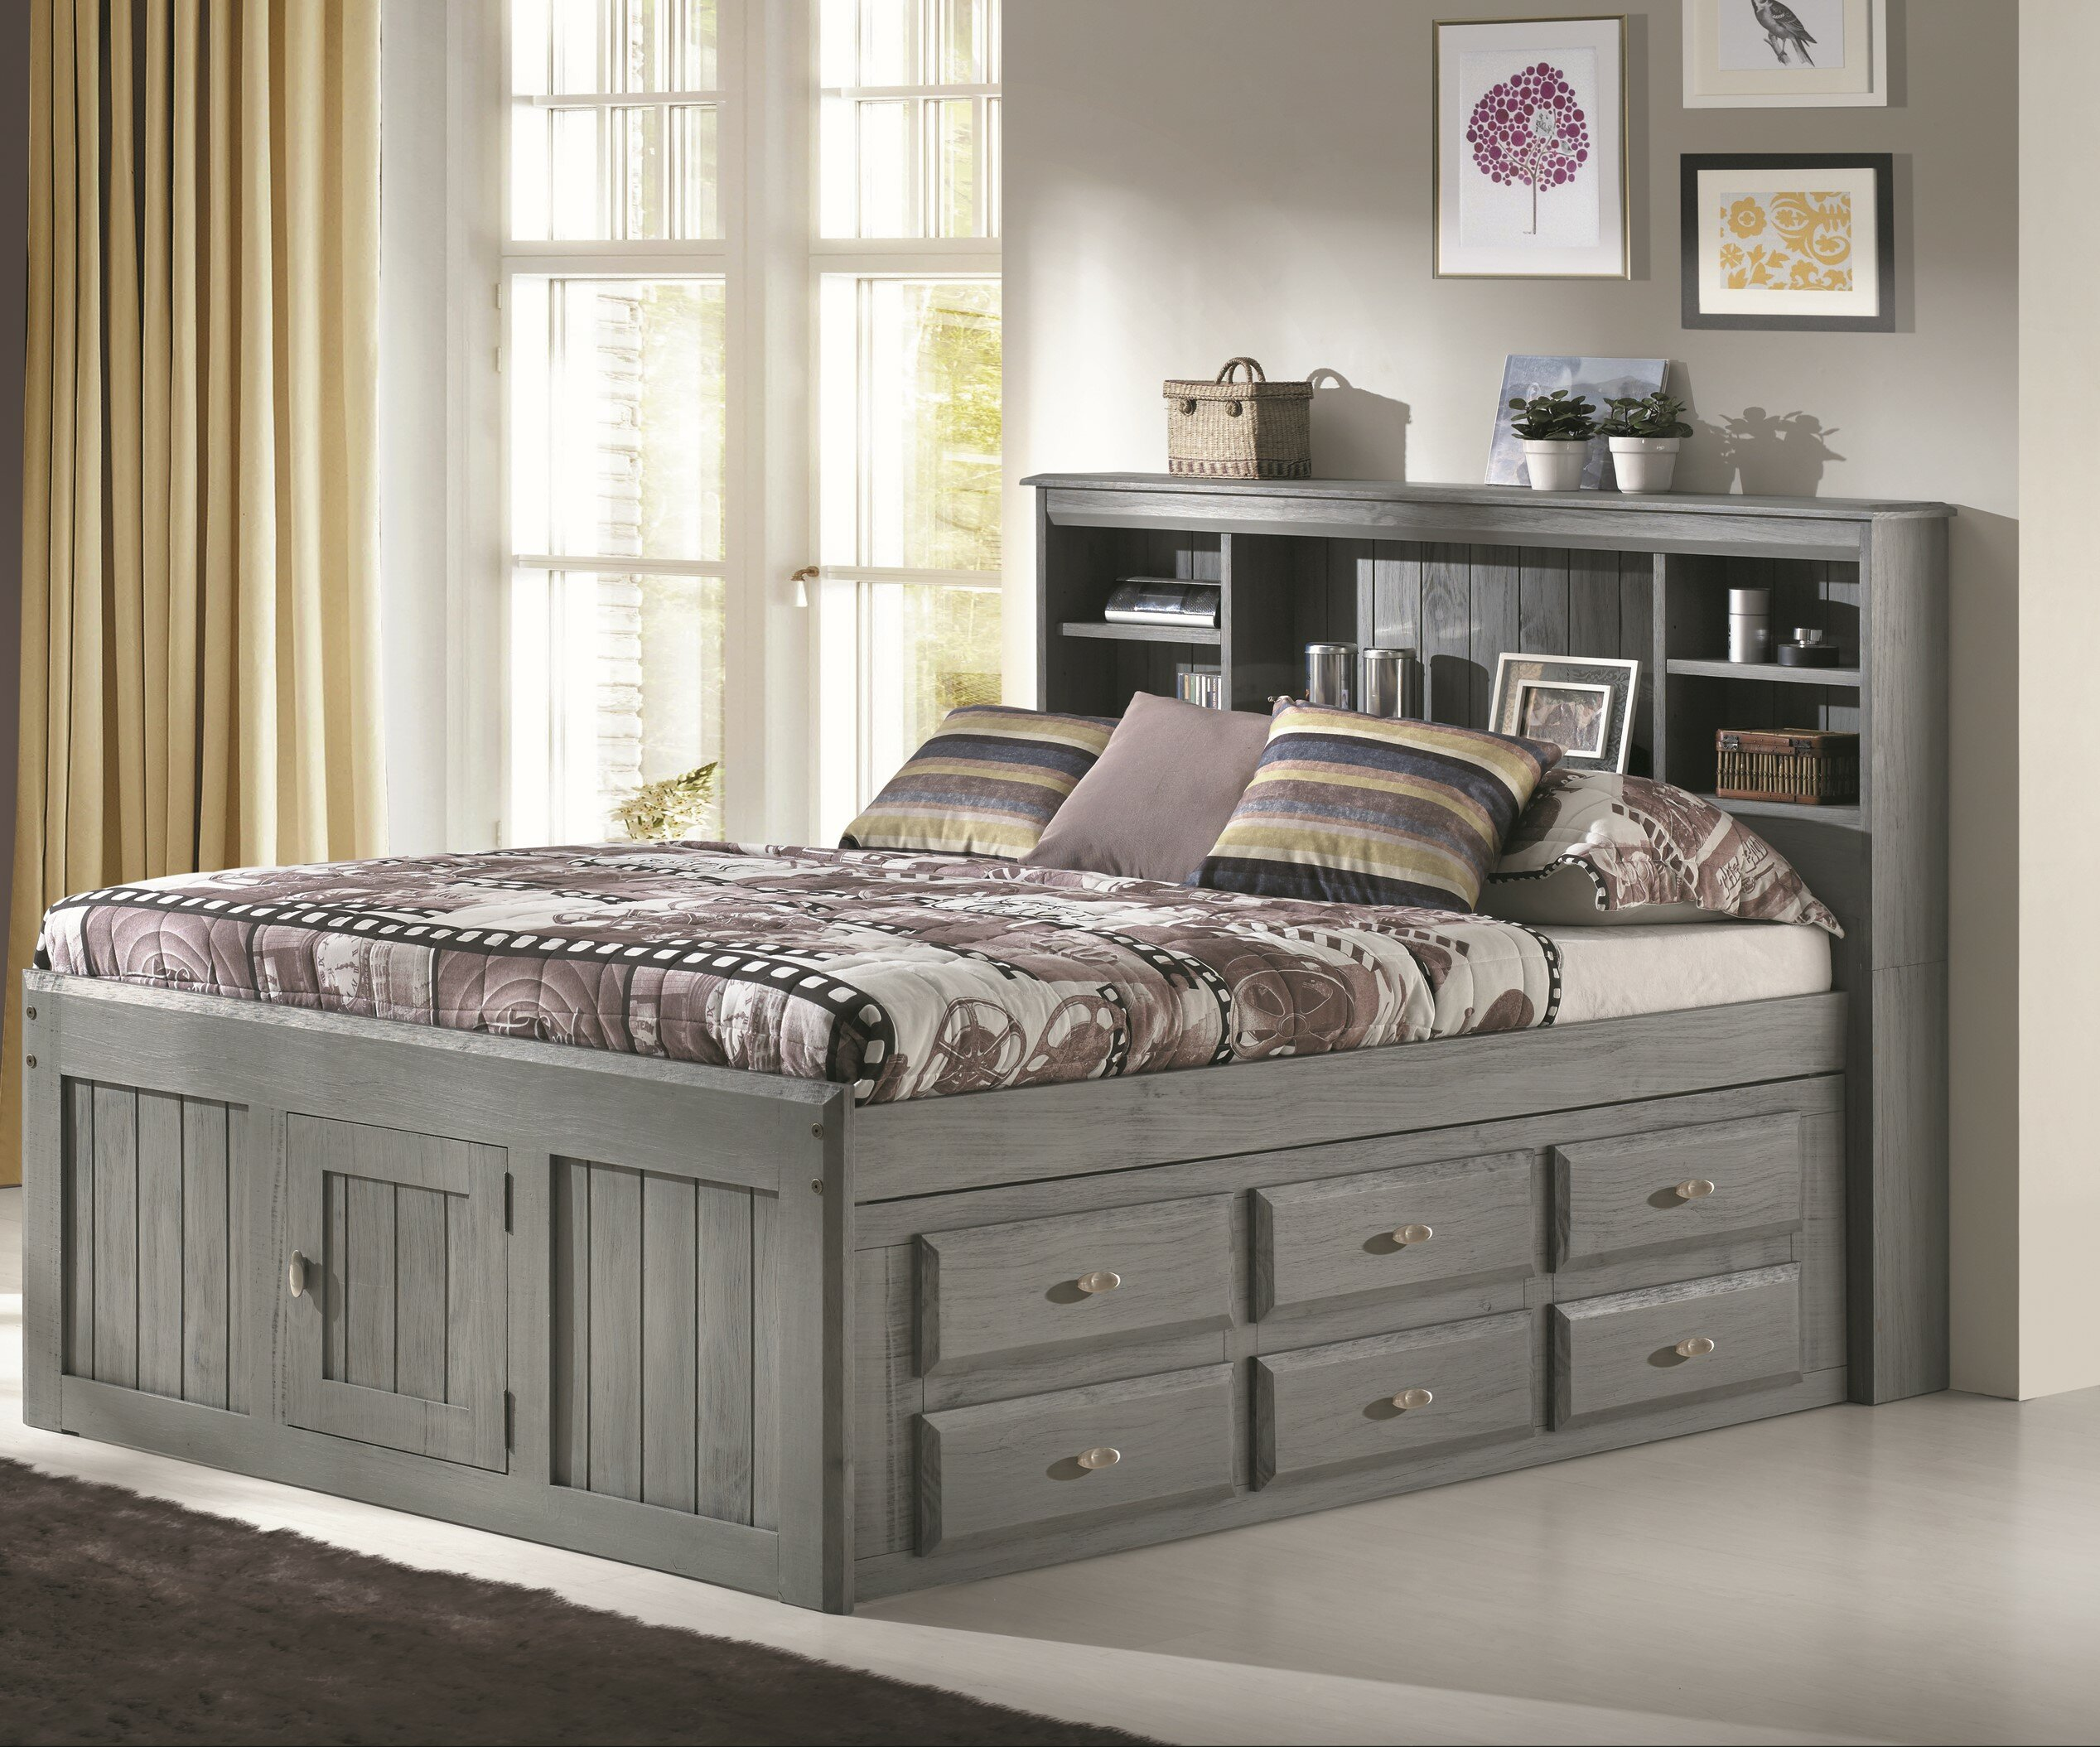 Image of: Birch Lane Boles Full Panel Bed With 6 Drawers Reviews Wayfair